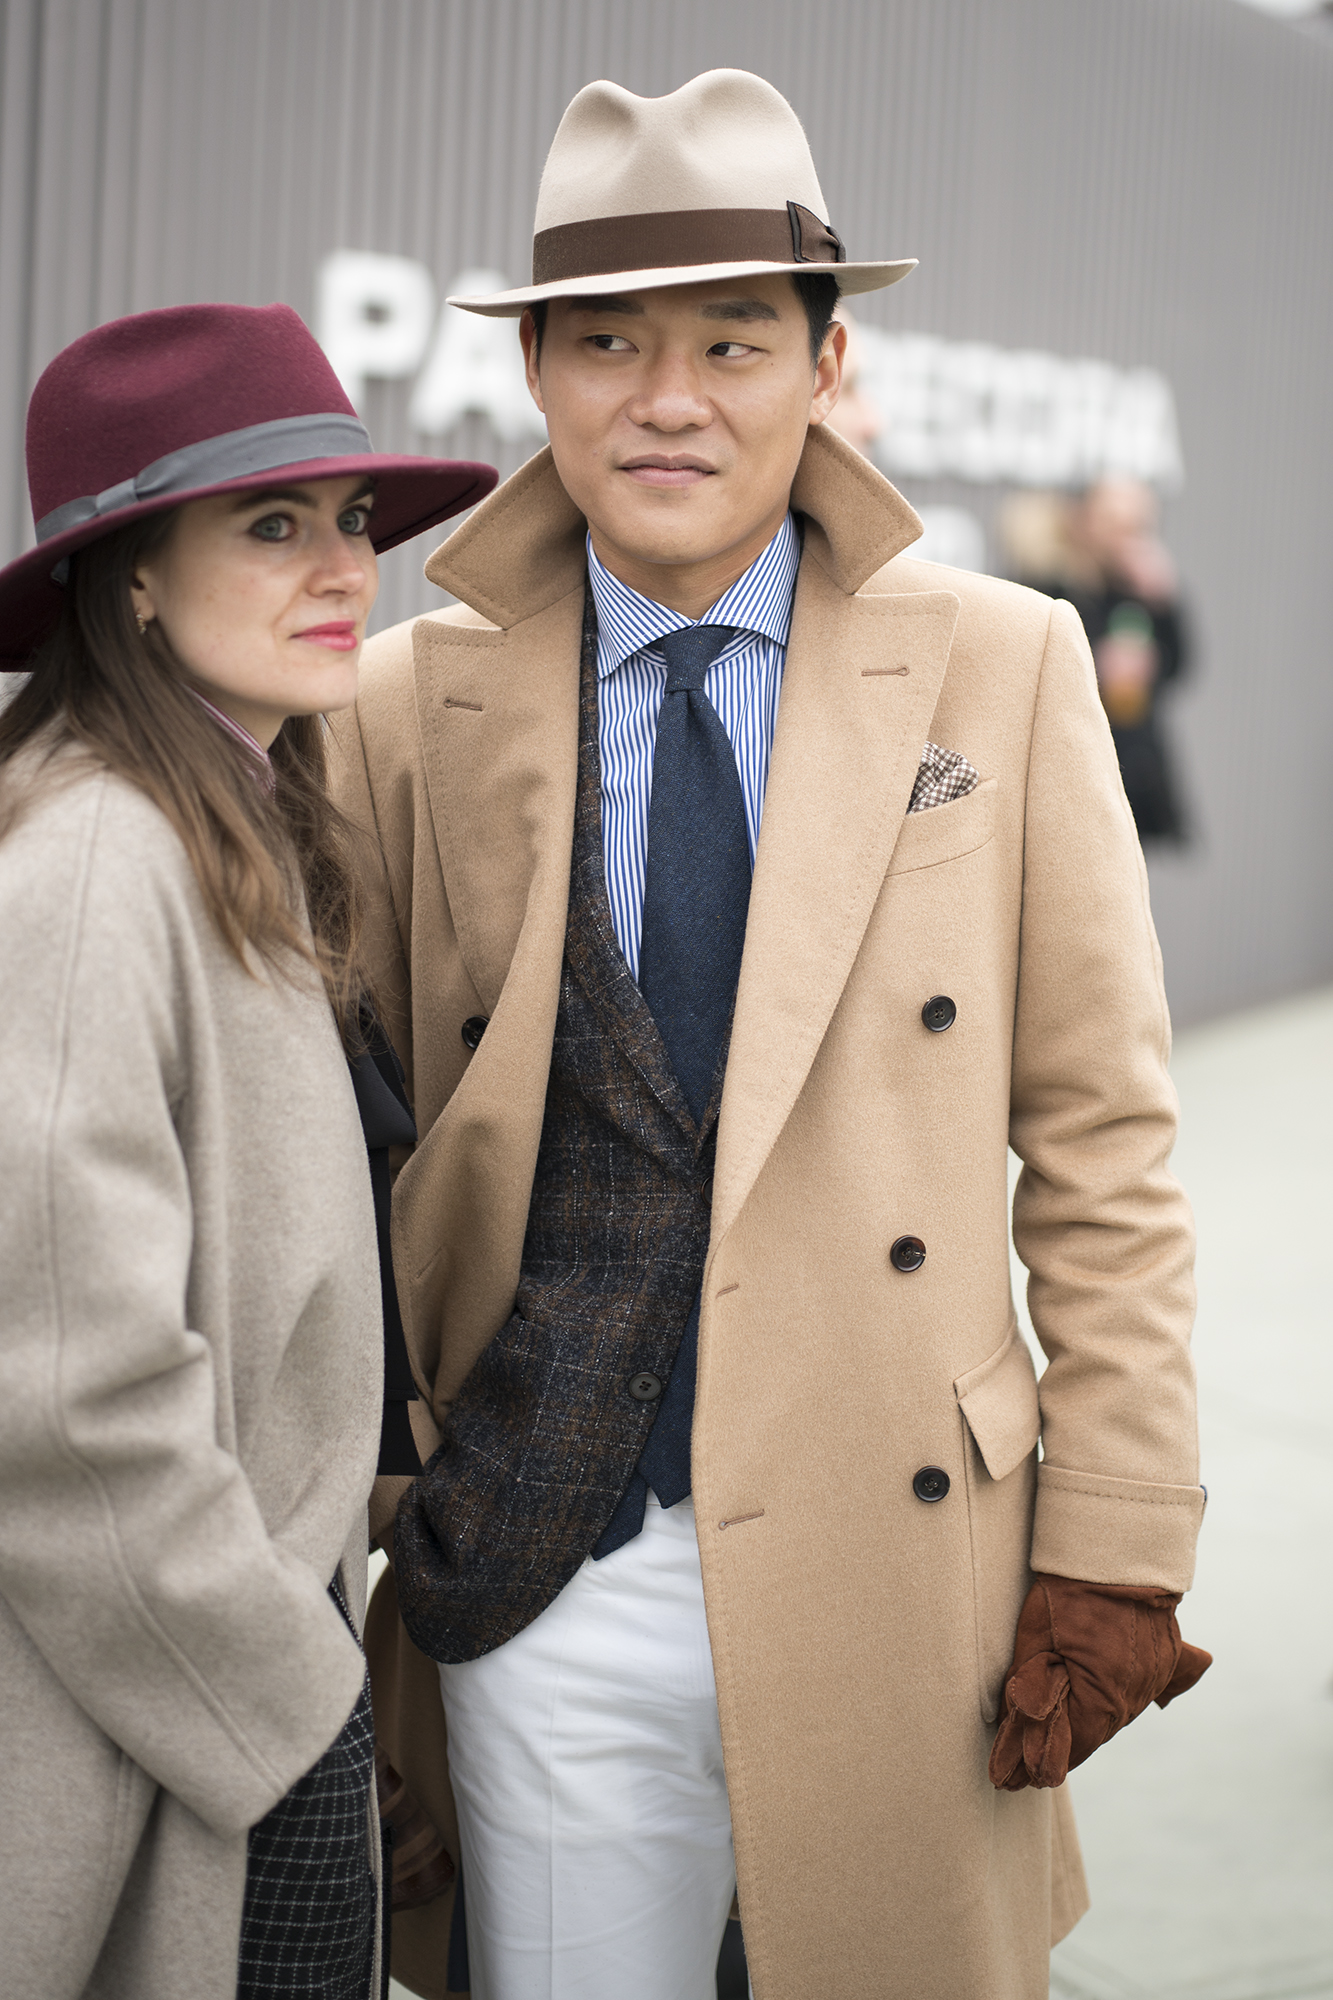 streetstyle from Pitti Uomo 91 day 3